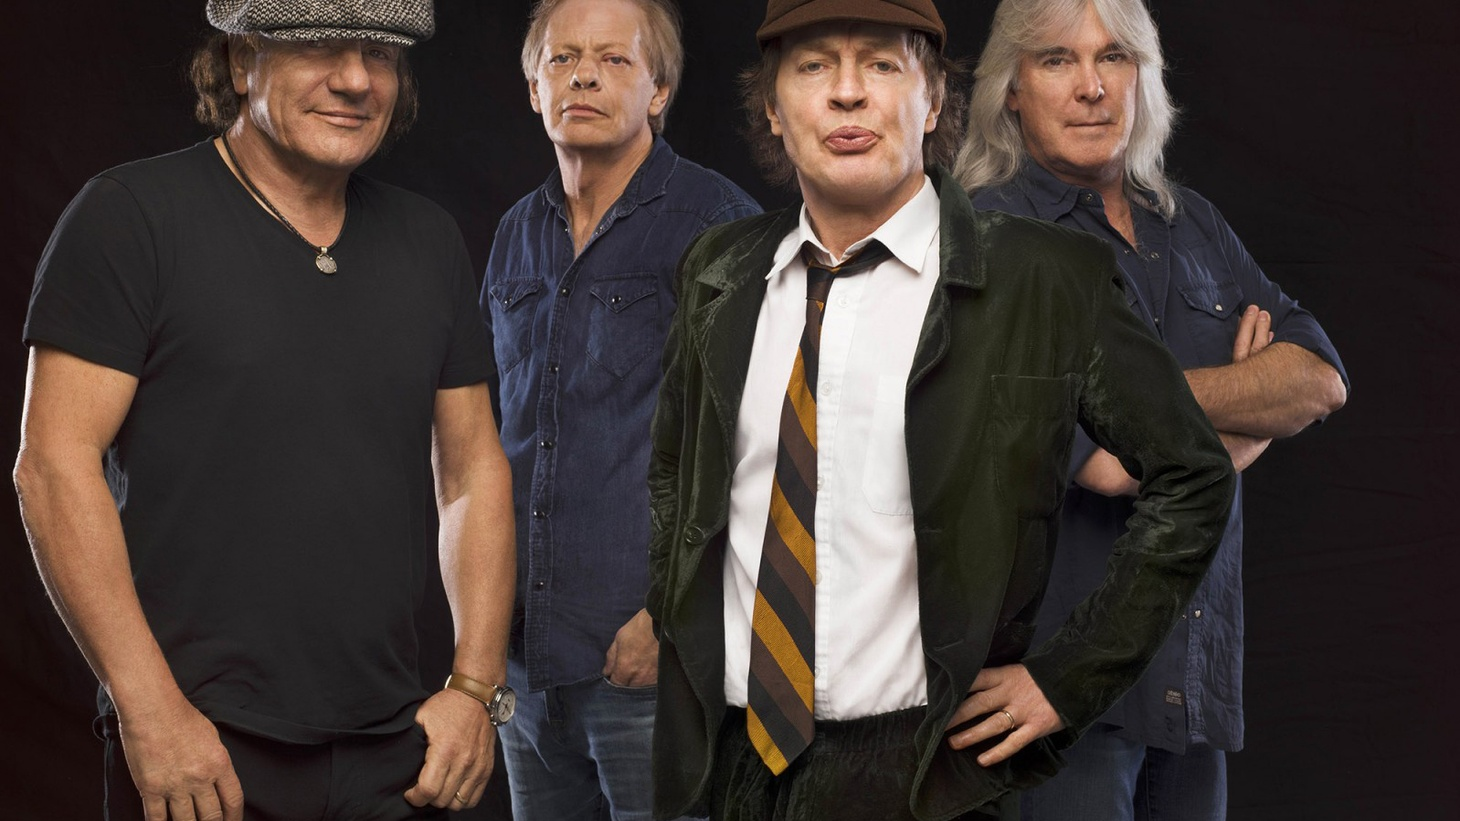 Aussie hard rockers AC/DC formed in 1973, but 2015 may be one of their best years yet. They are slated to headline Coachella next week and, as a tribute to their greatness, we've gathered reflections on their music from four guests we have hosted on the show over the years – comedian Marc Maron, chef Jon Shook, director Paul Feig and professional athlete Shaun White. Last but not least, Jason Bentley offers his personal favorite.